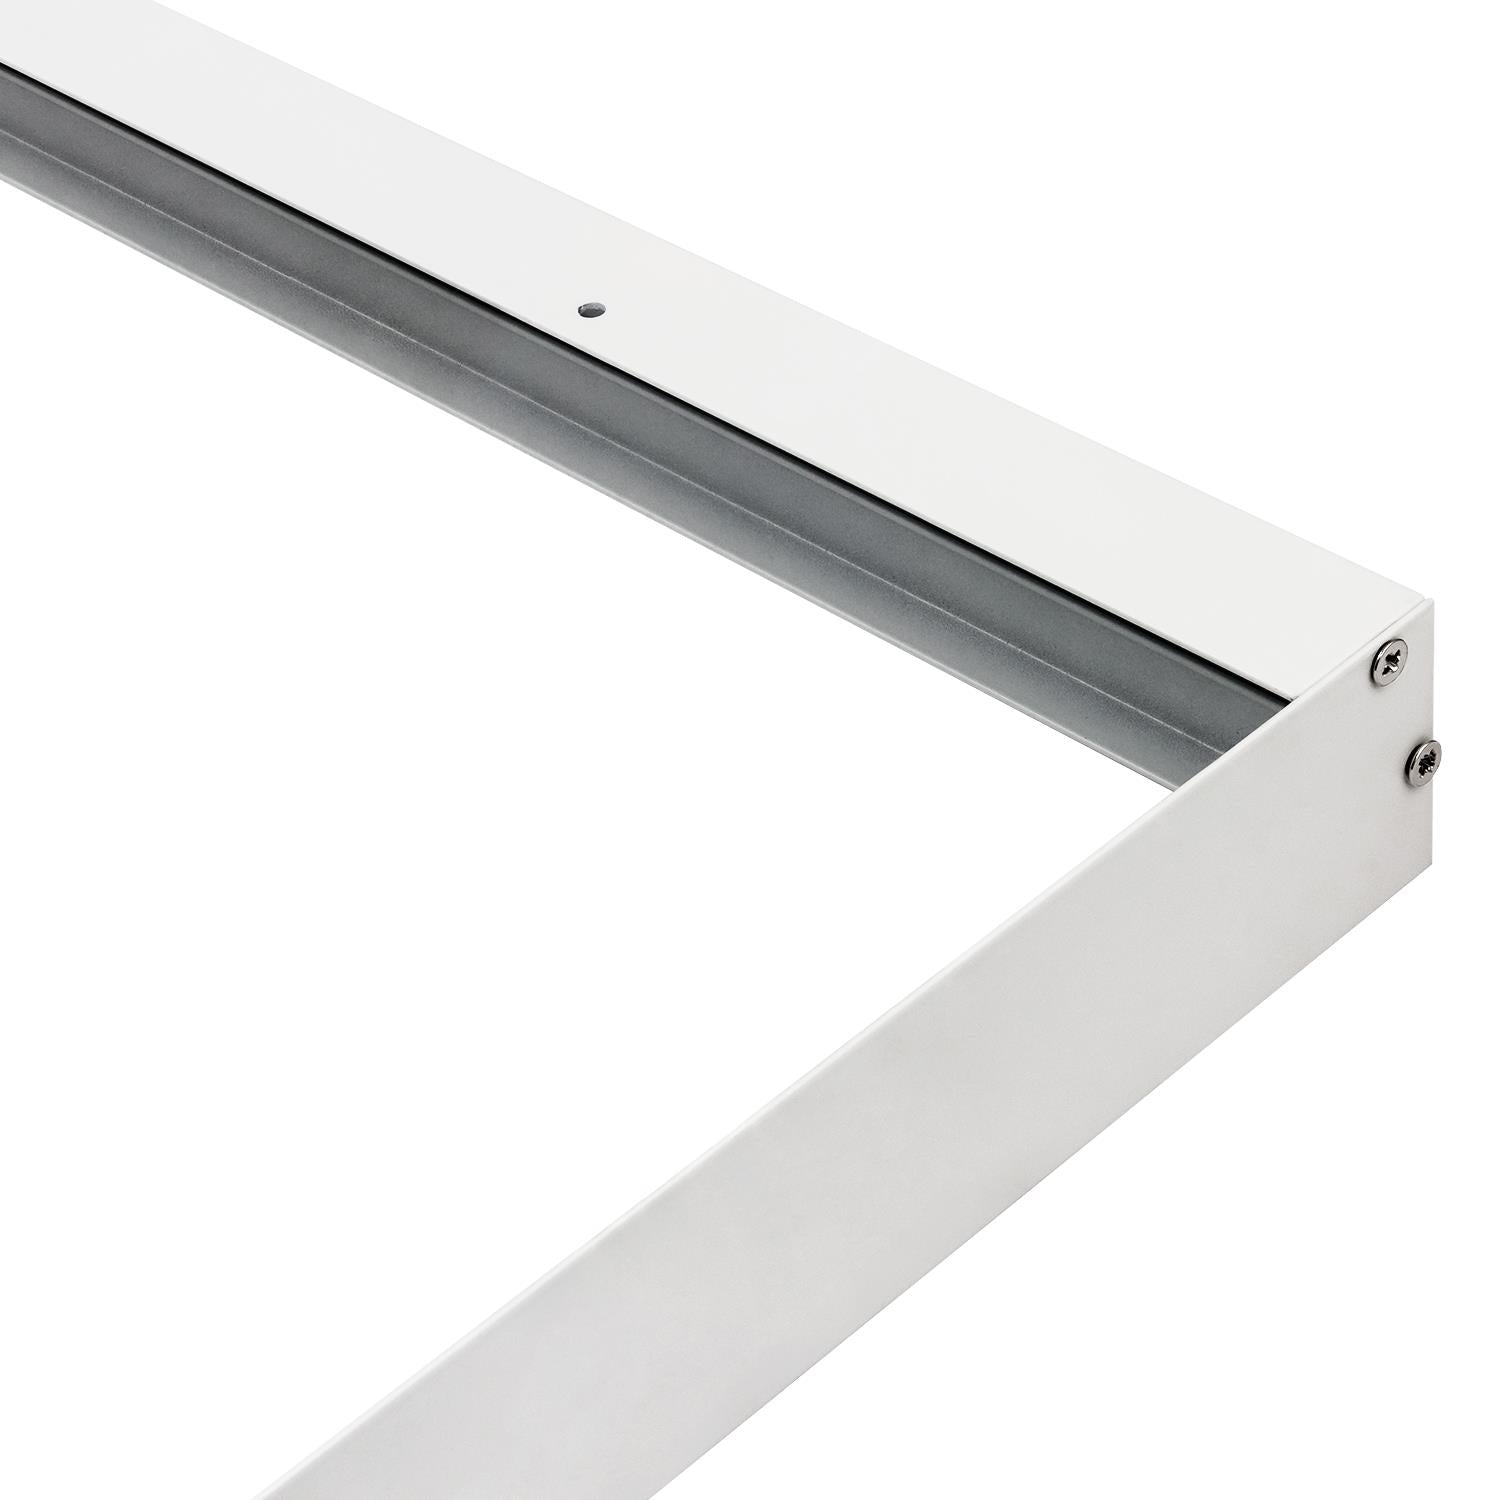 SUNLITE LED Flat Panel Kit Surface Mounting - LFX/FLAT/2X4